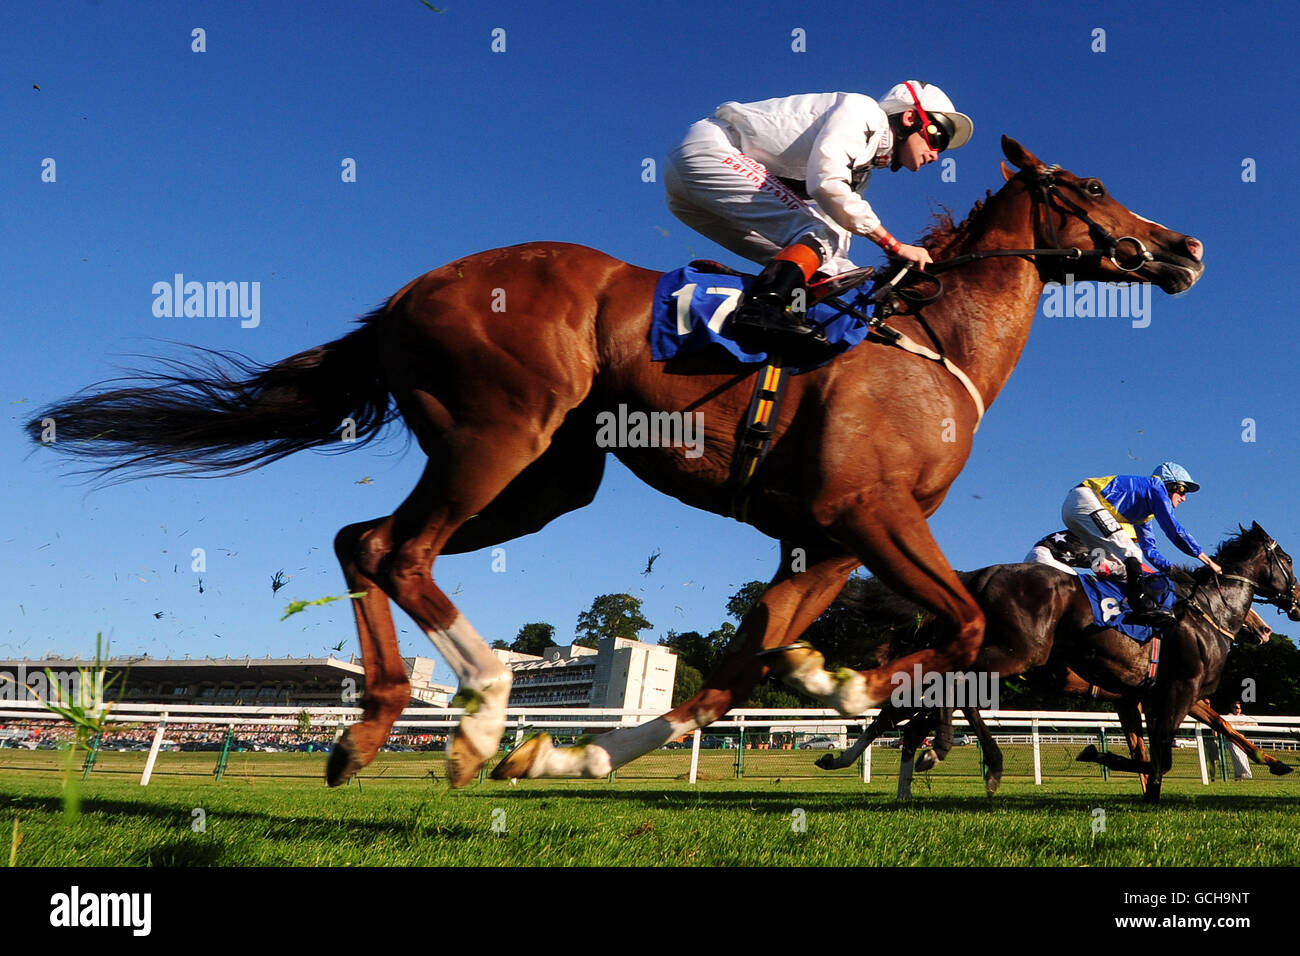 Lengths To Which Photoshop Jockeys At >> Horse Racing Races Full Length Saddle Jockey Cap Goggles Whip Stock